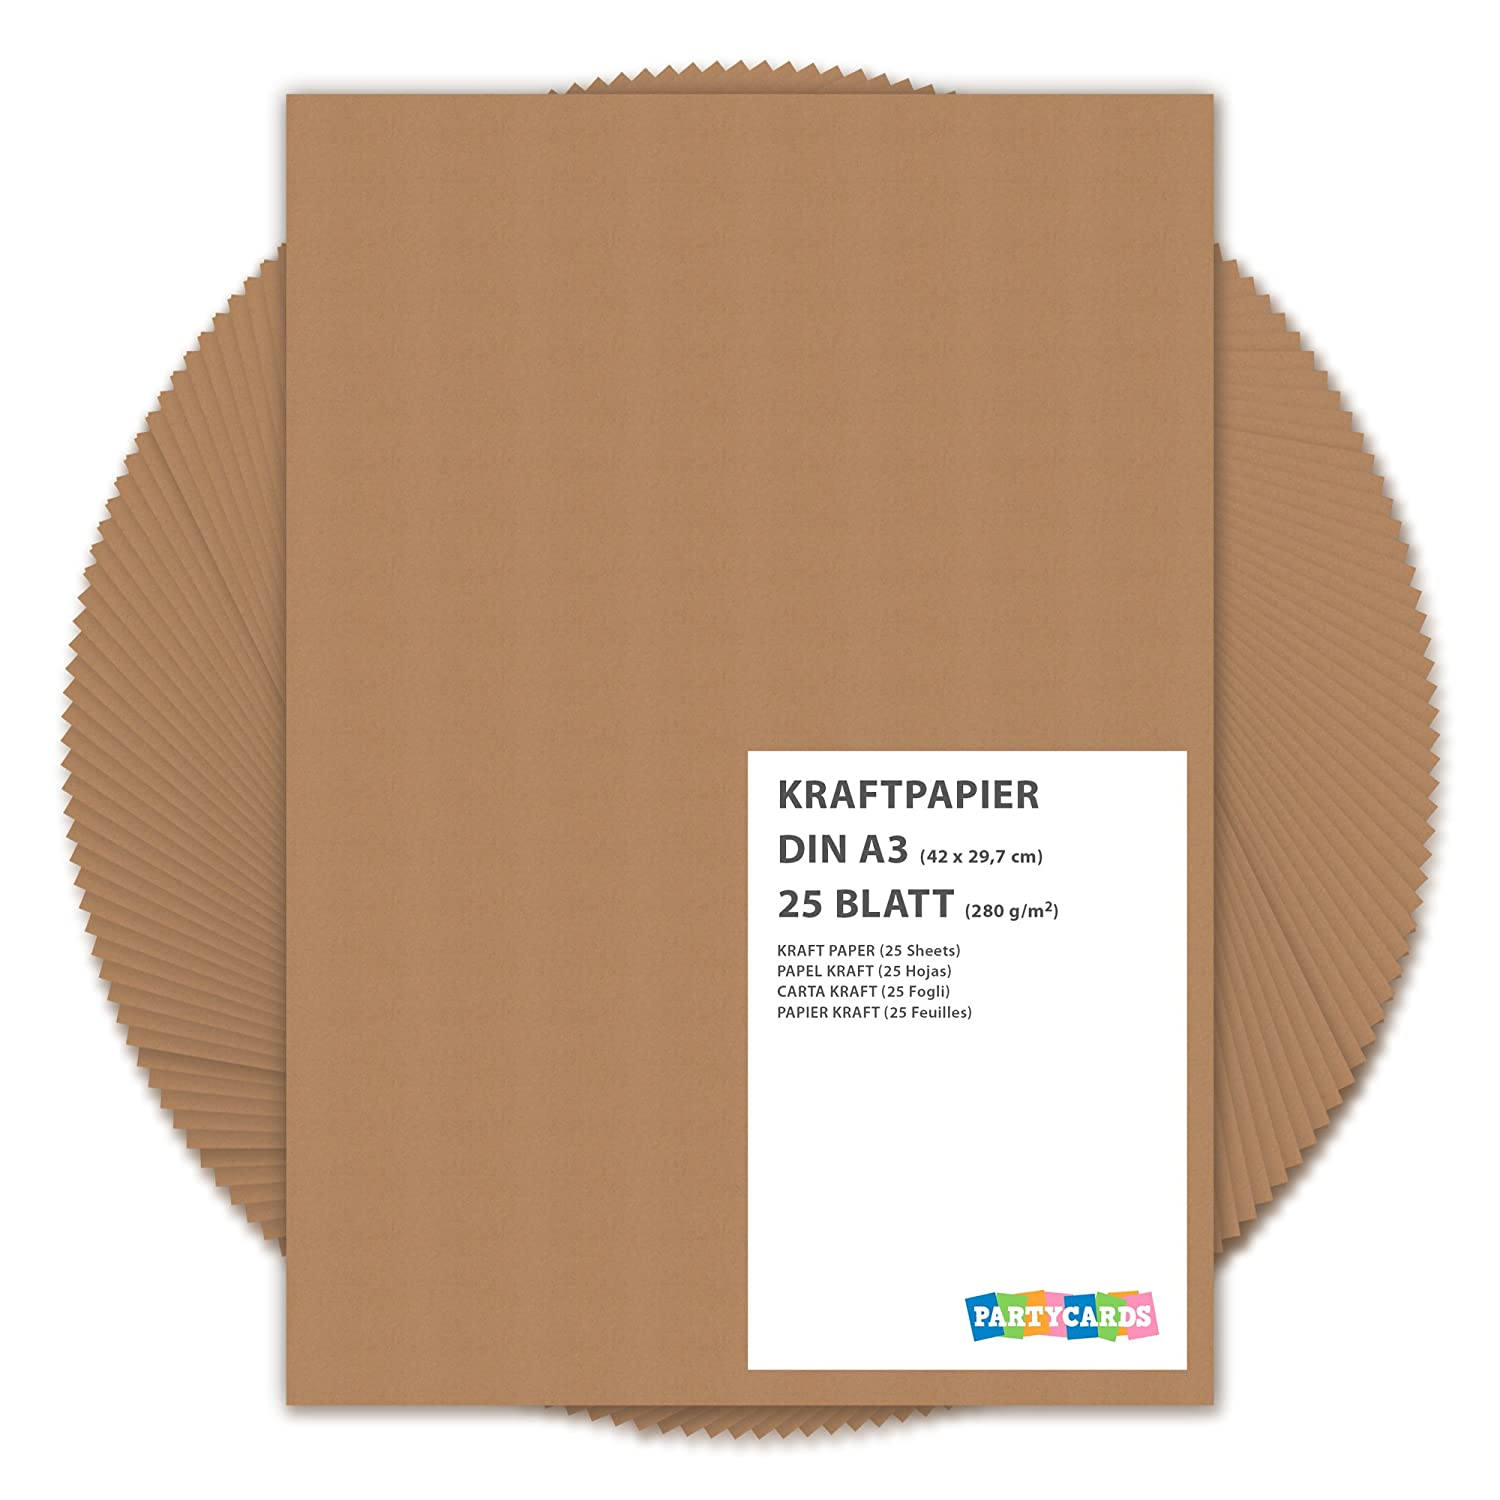 25 Sheets of Kraft Paper / Card A3 280g/m² Quality Cardboard Ideal for Craft and DIY / Brown Partycards KP-25/2017-A3